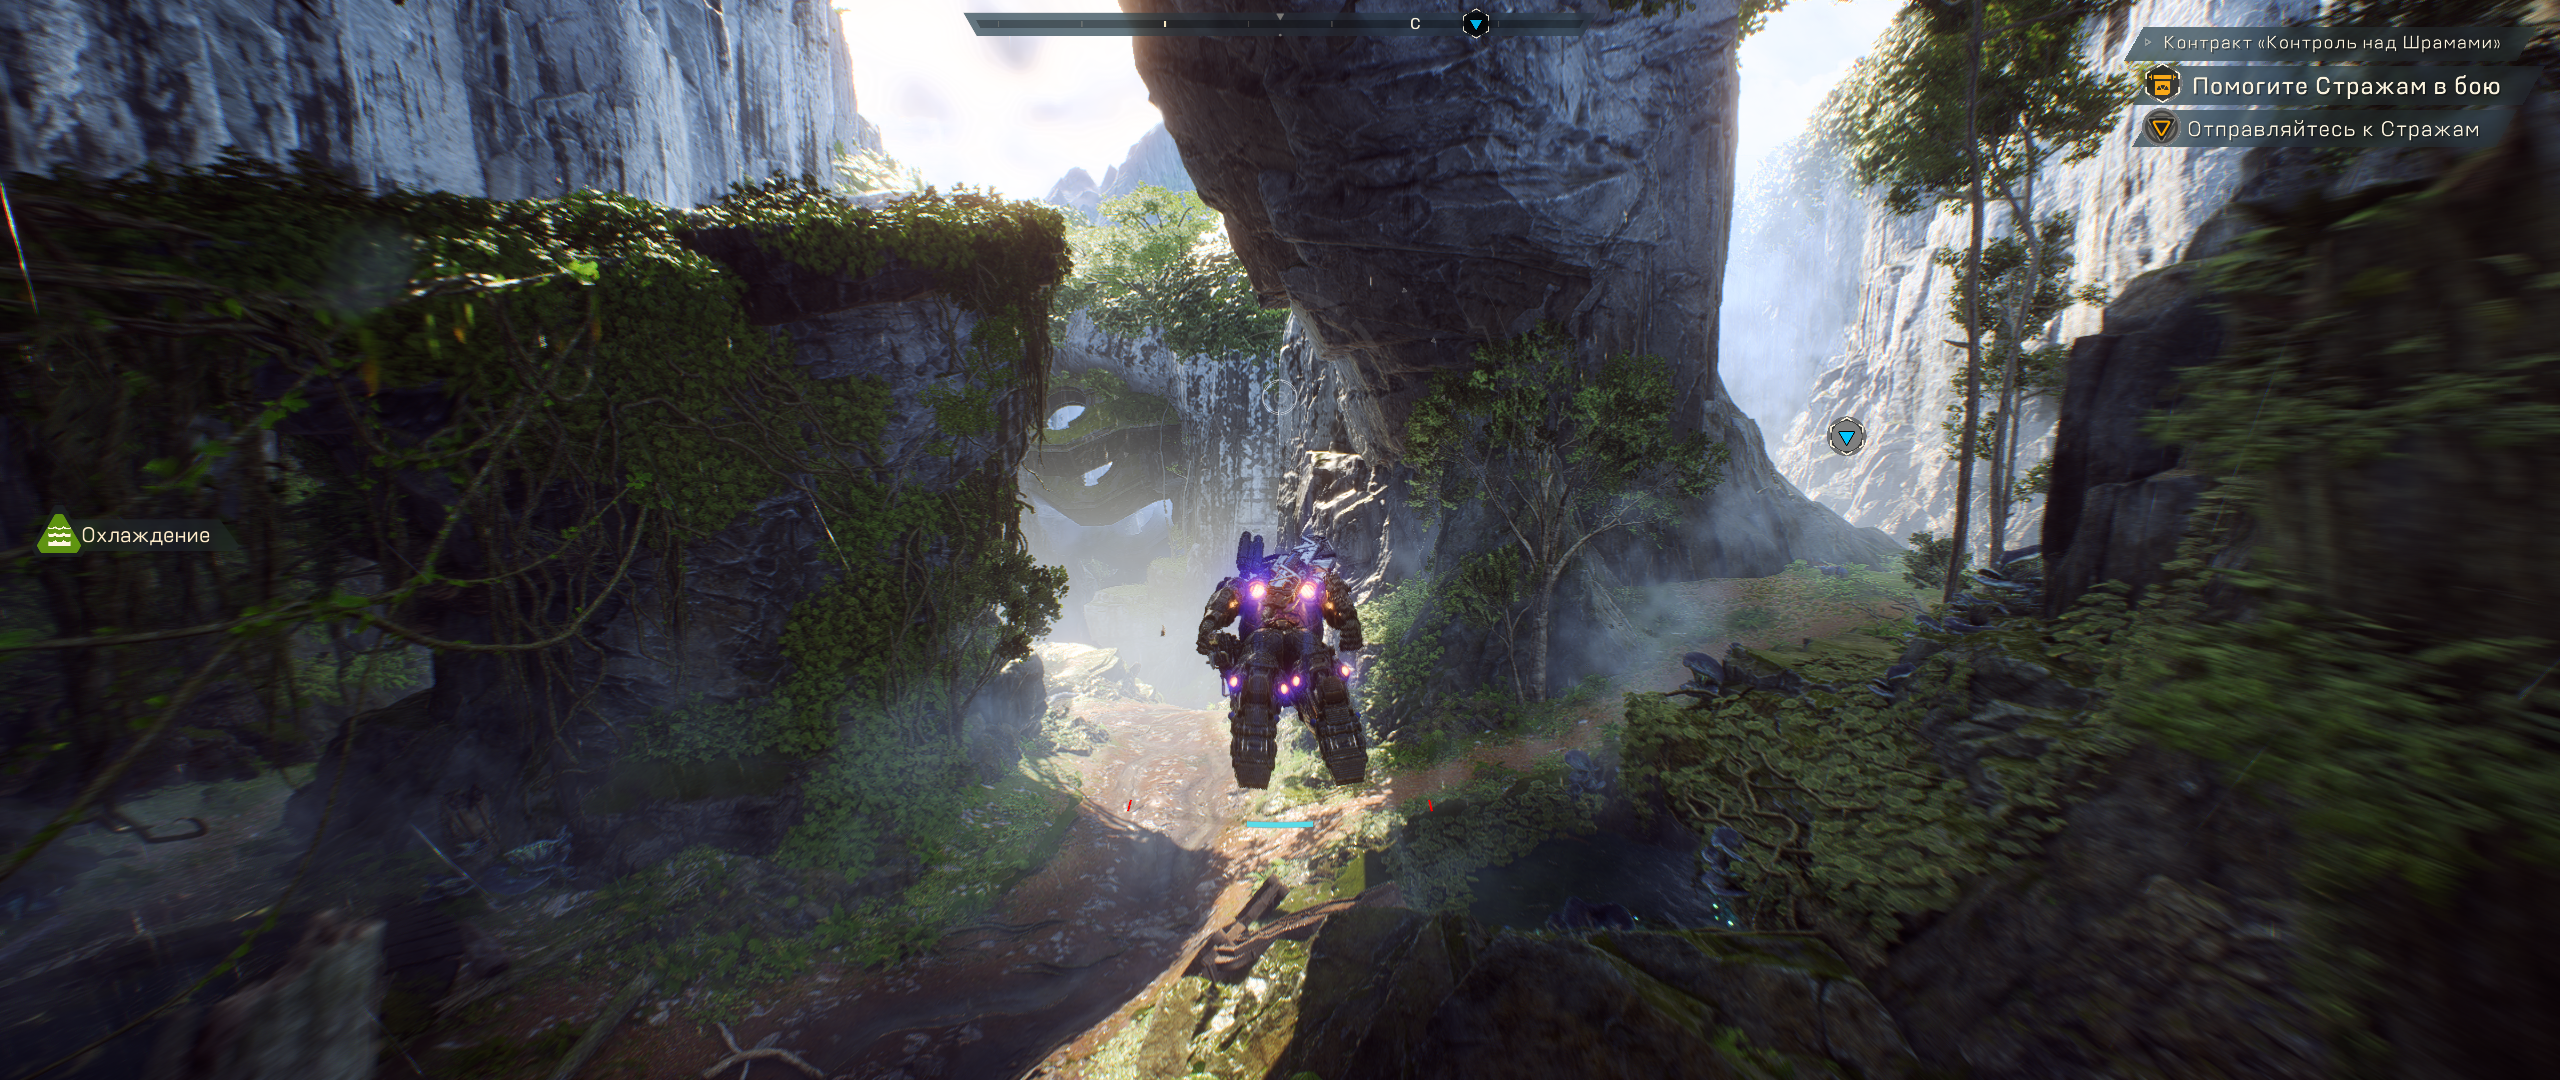 Anthem Screenshot 2019.03.25 - 01.33.16.09.png - Anthem